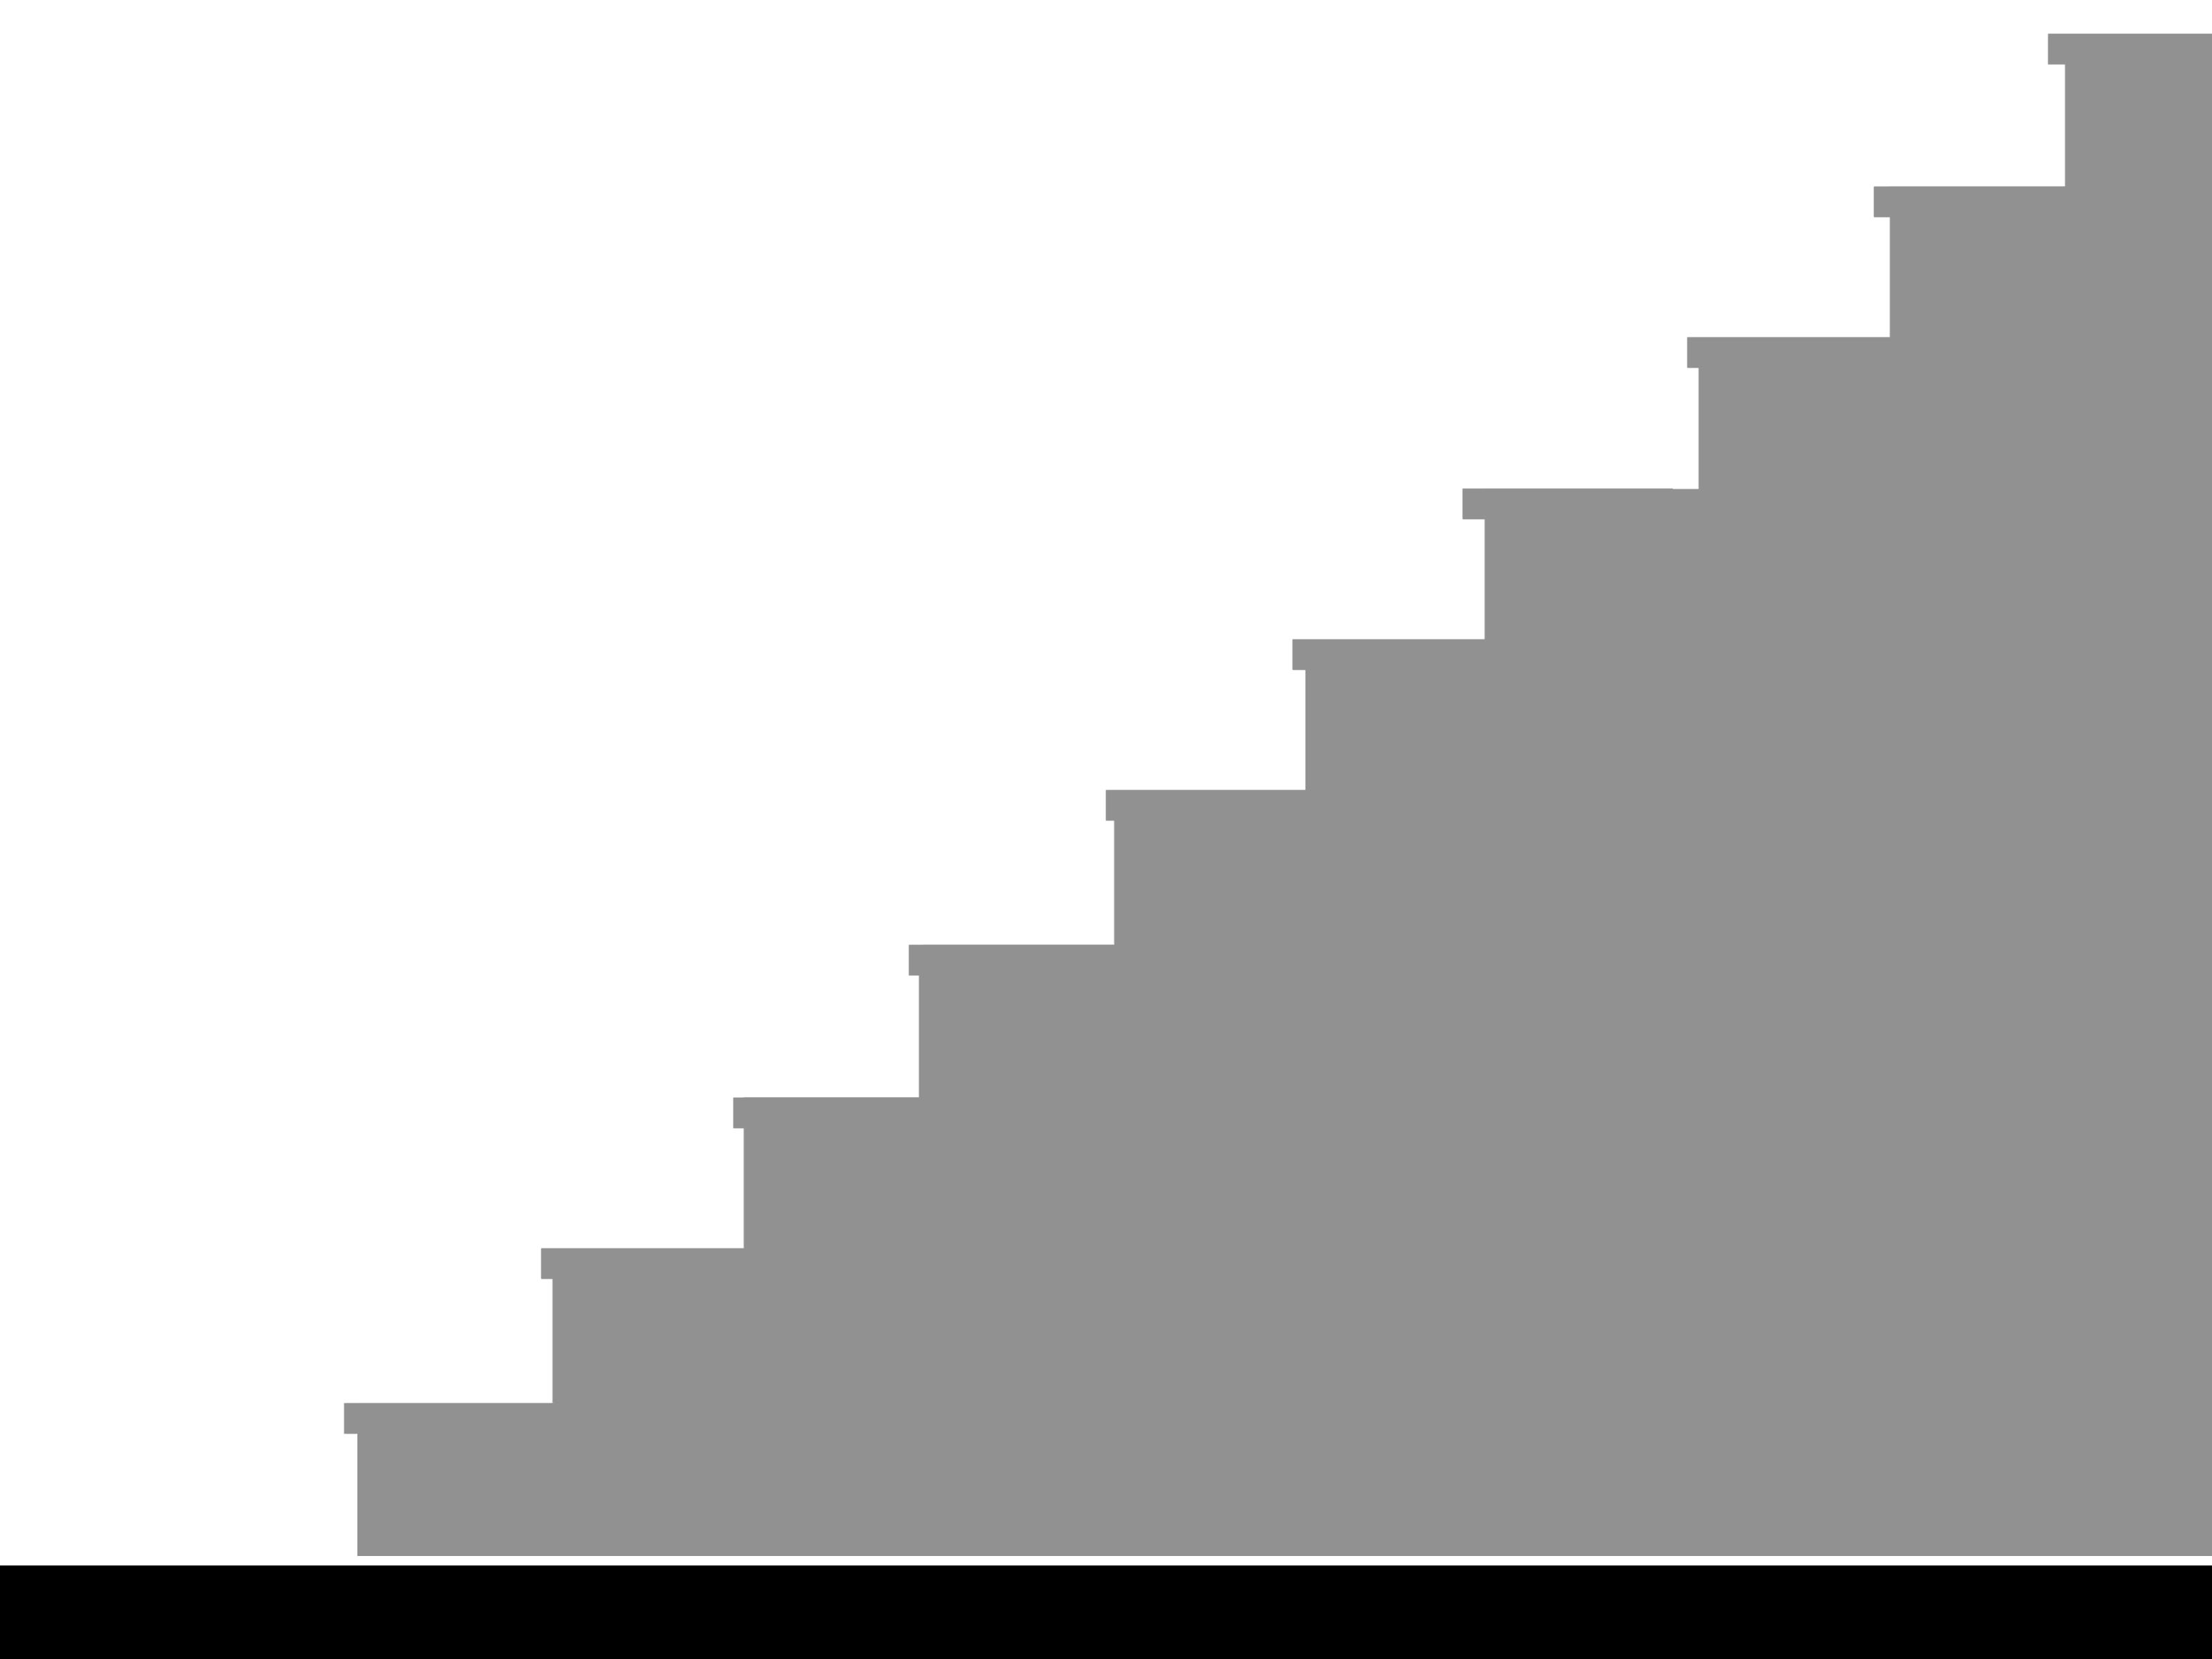 8 steps clipart picture library stock 76+ Stairs Clipart | ClipartLook picture library stock